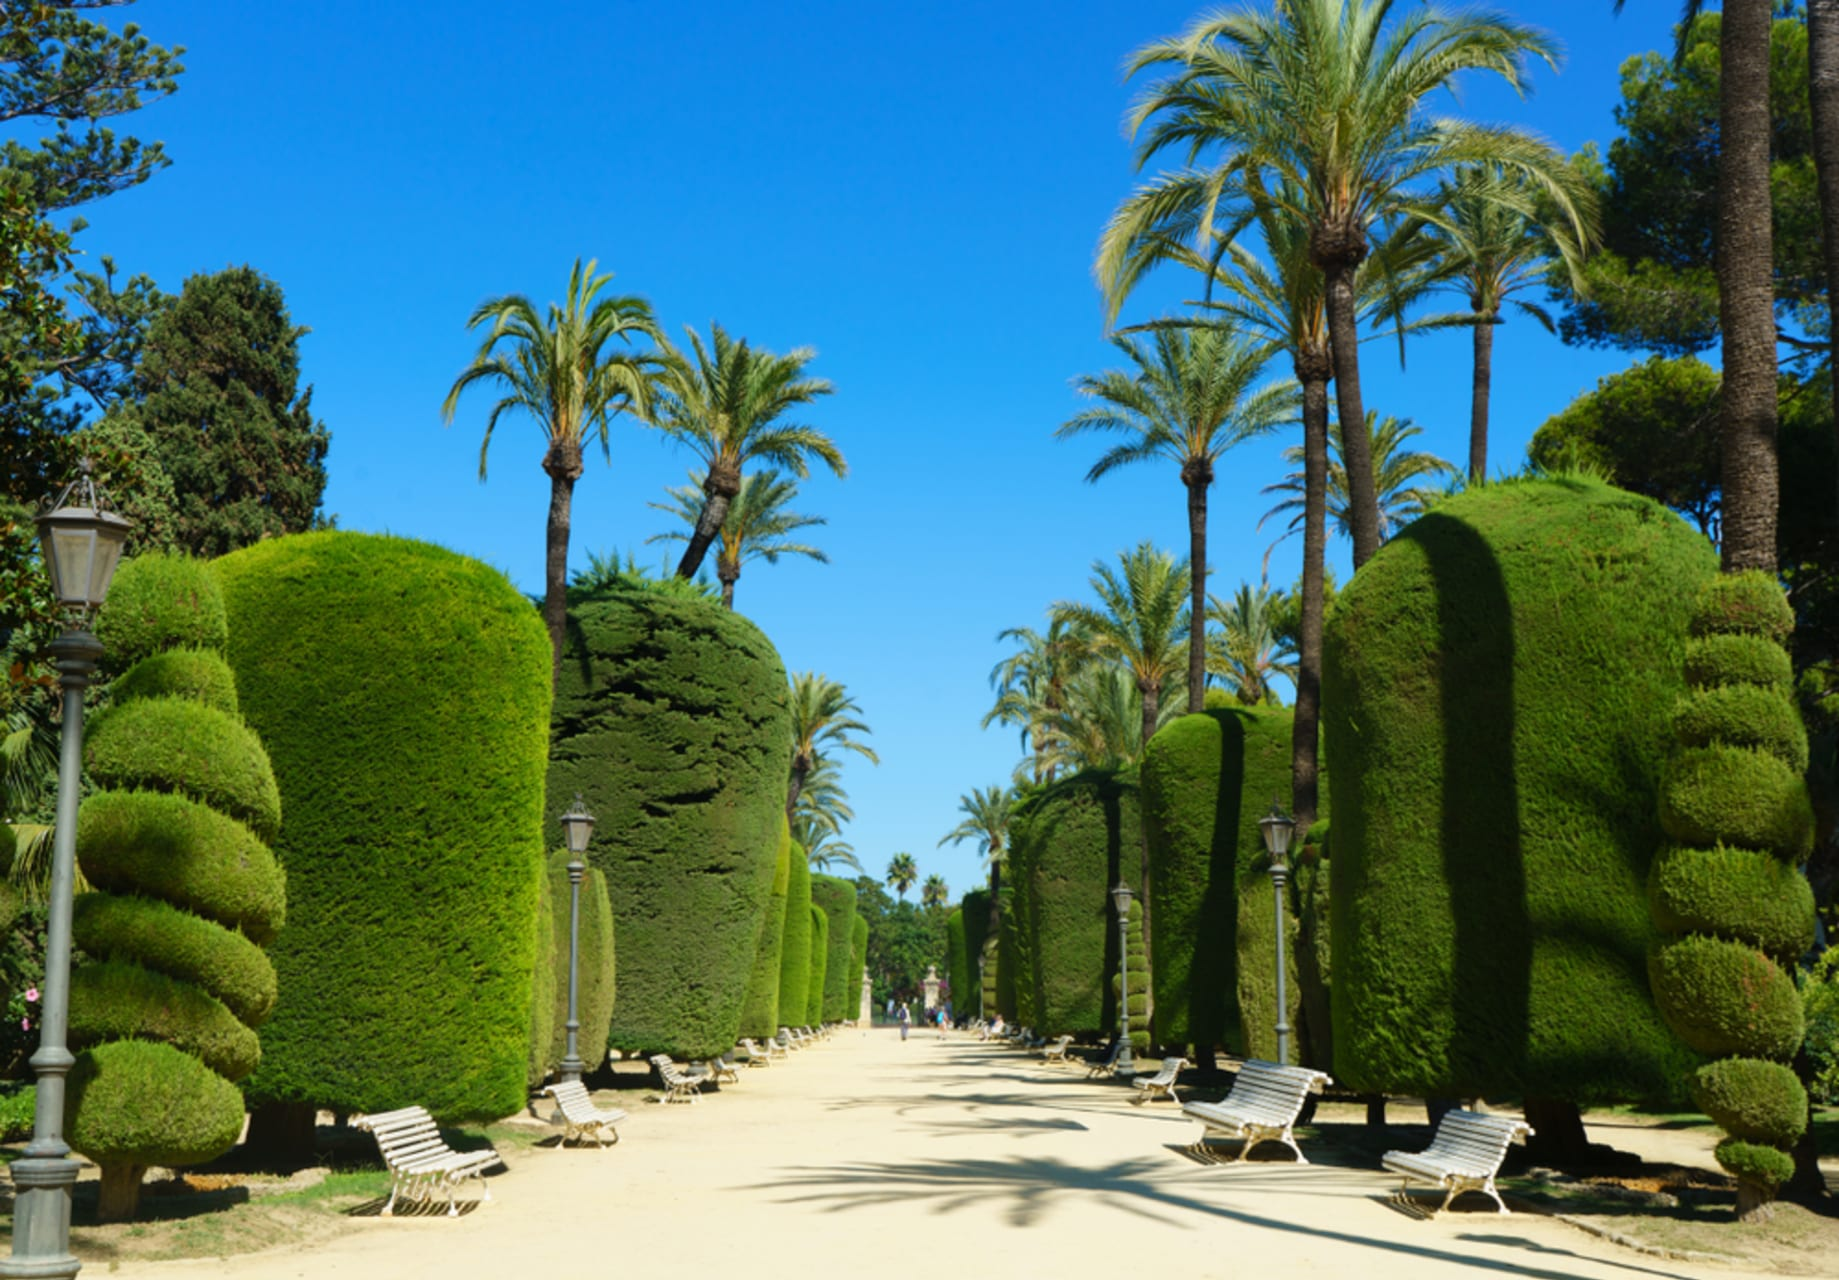 Cádiz - Beautiful gardens with the sea views,  España Square and the importance of the first Constitution in Spain